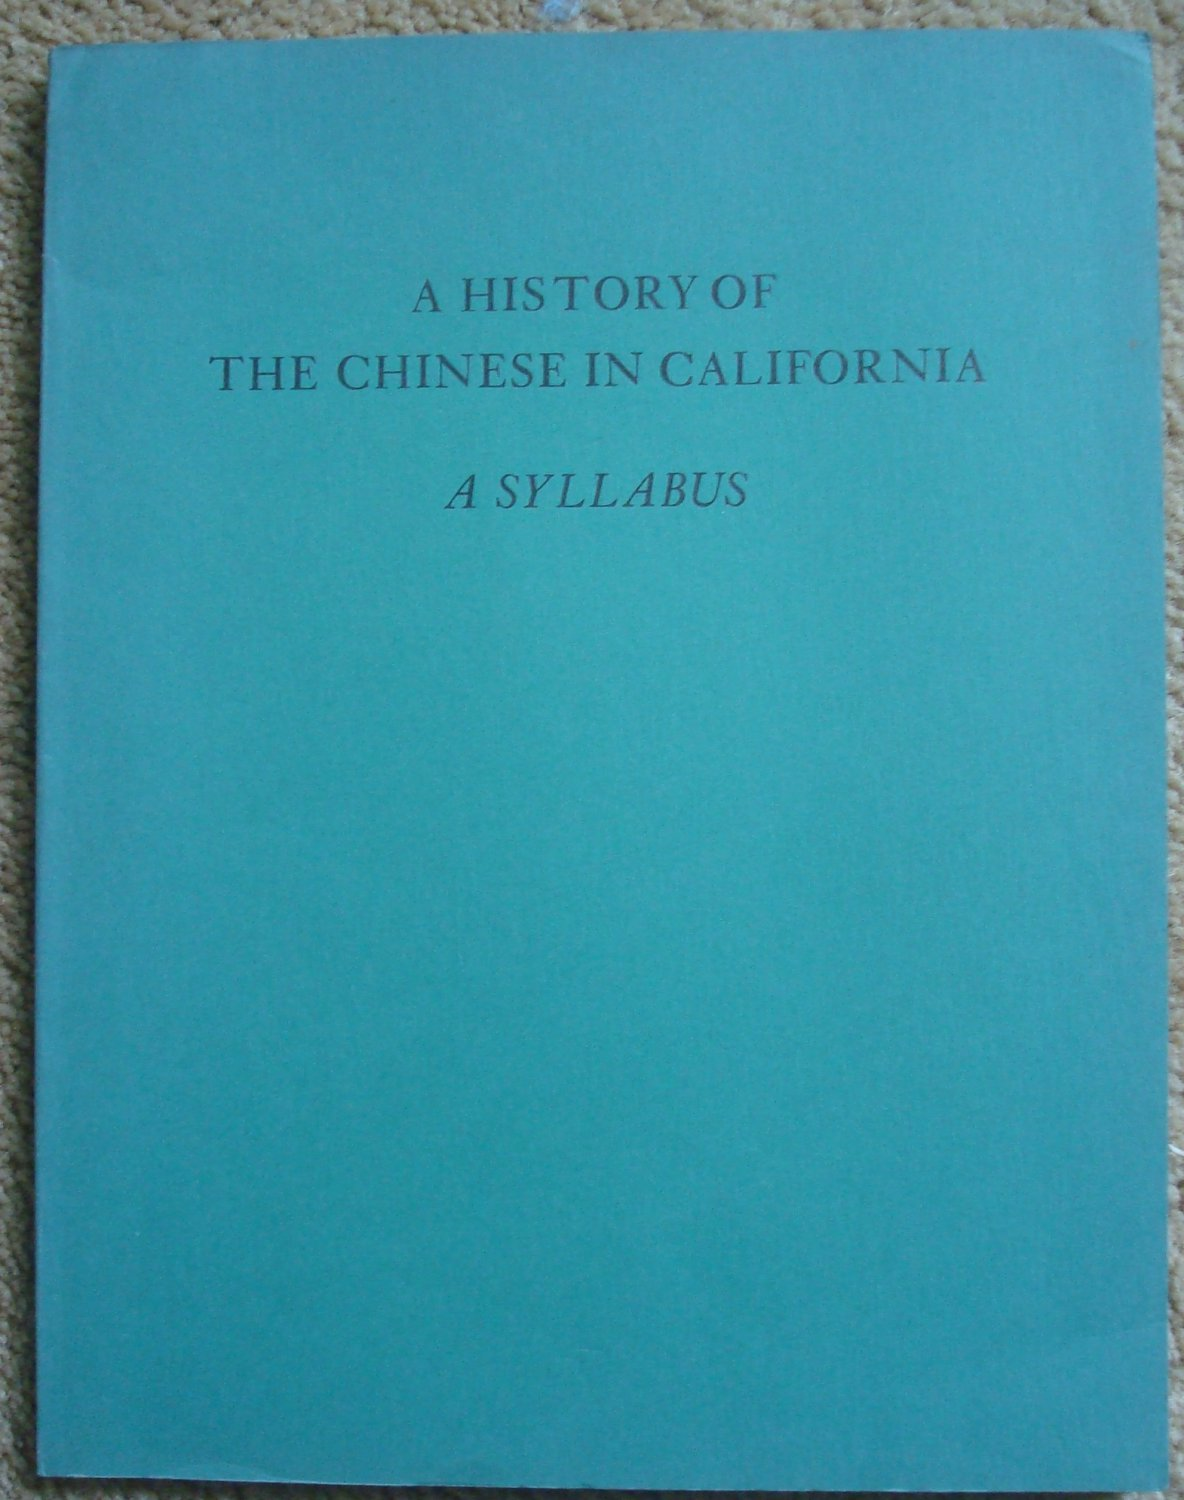 A History of the Chinese in California: A Syllabus